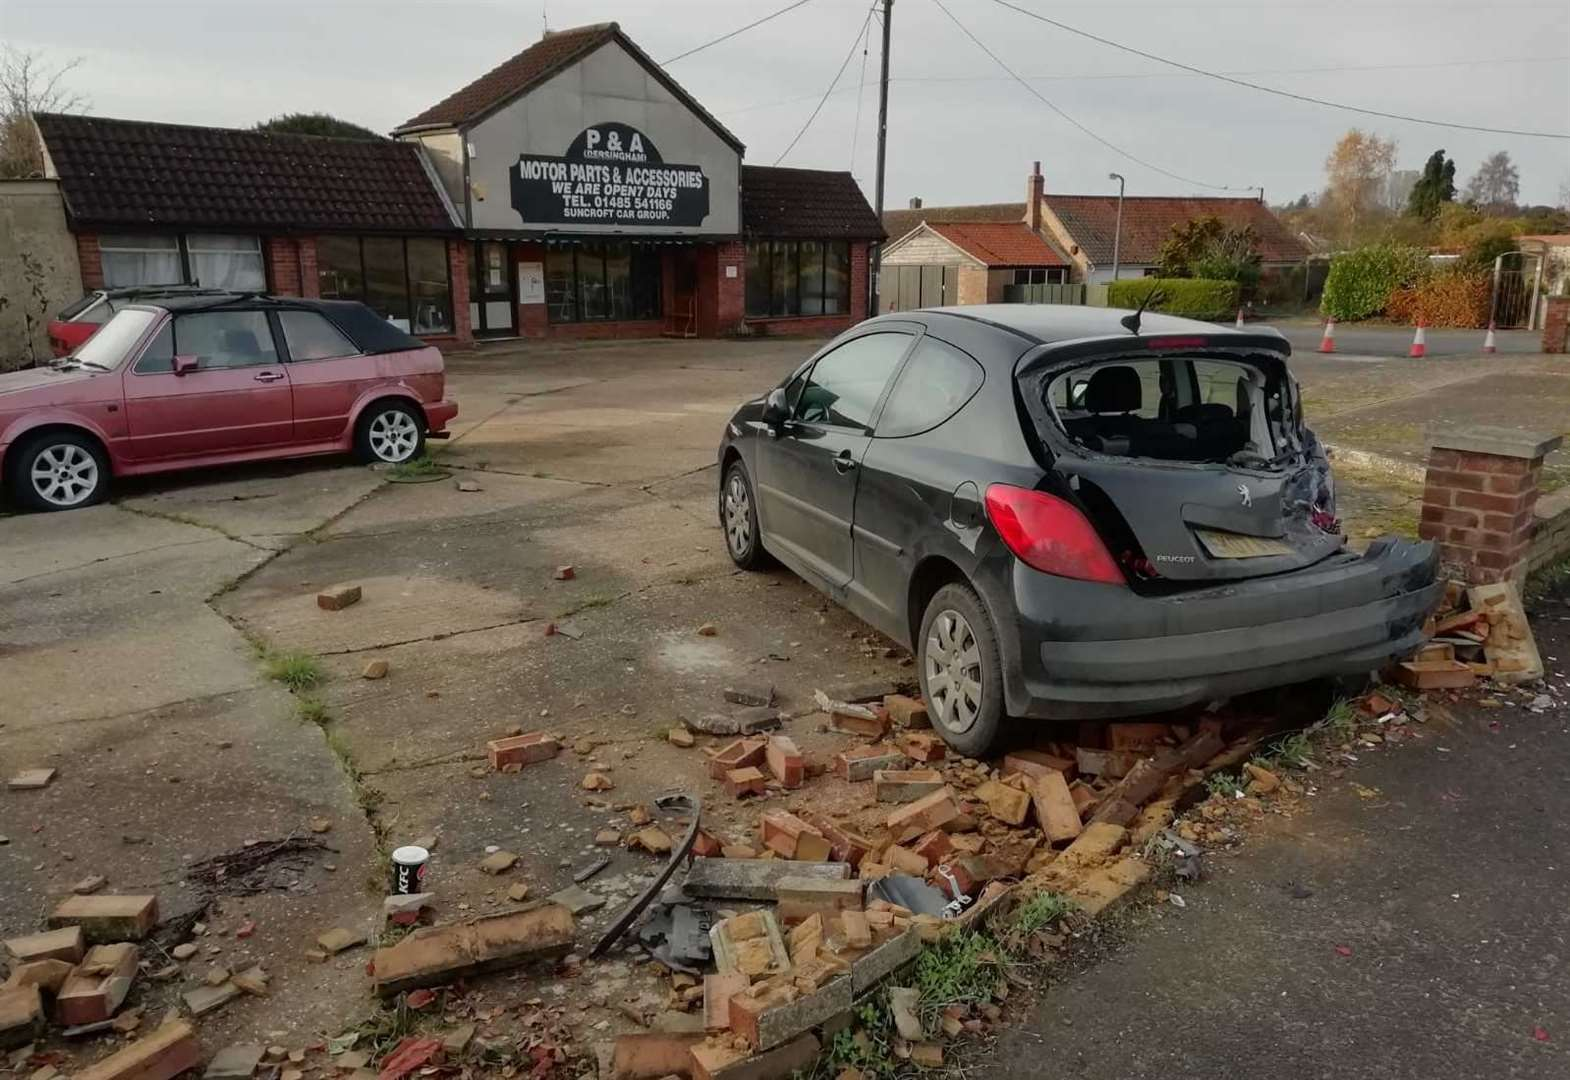 Stationary car badly damage after being 'rear ended' into wall in West Norfolk village